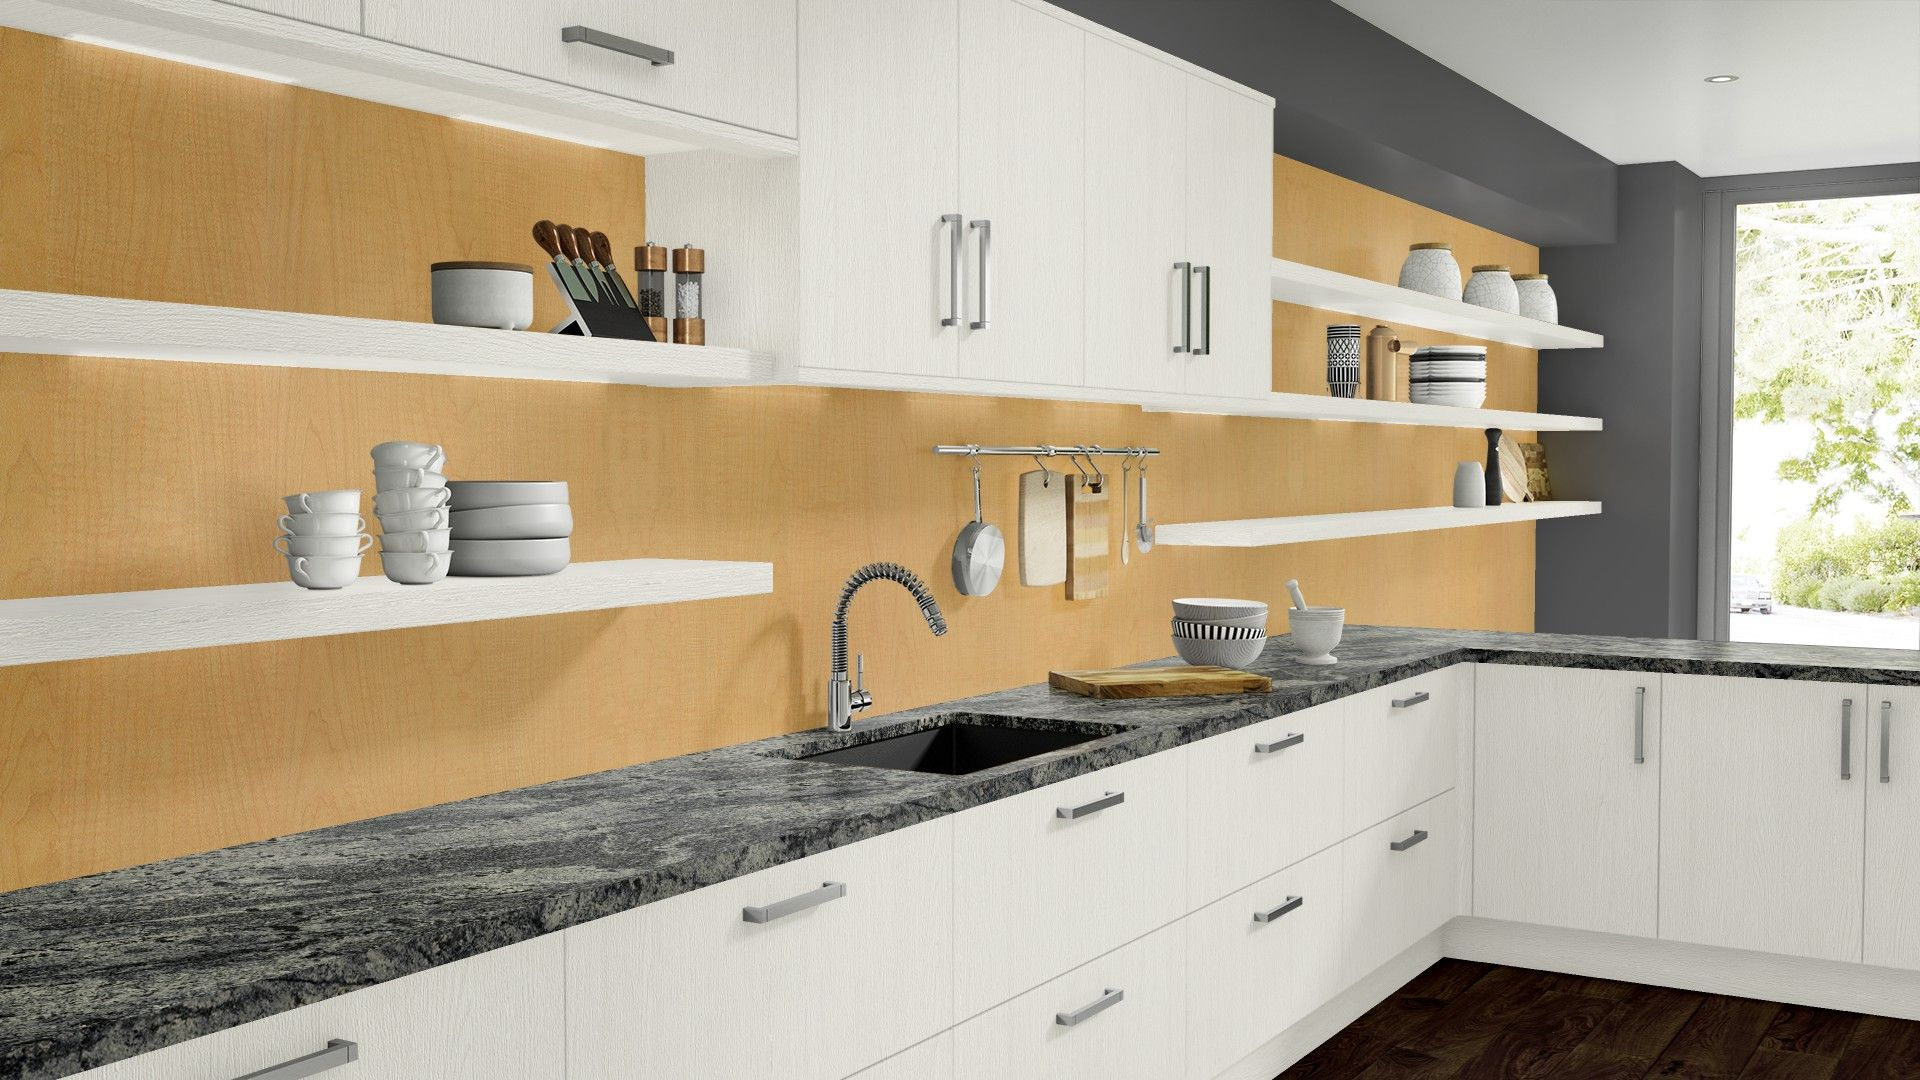 Get inspired for your kitchen renovation with wilsonartus free